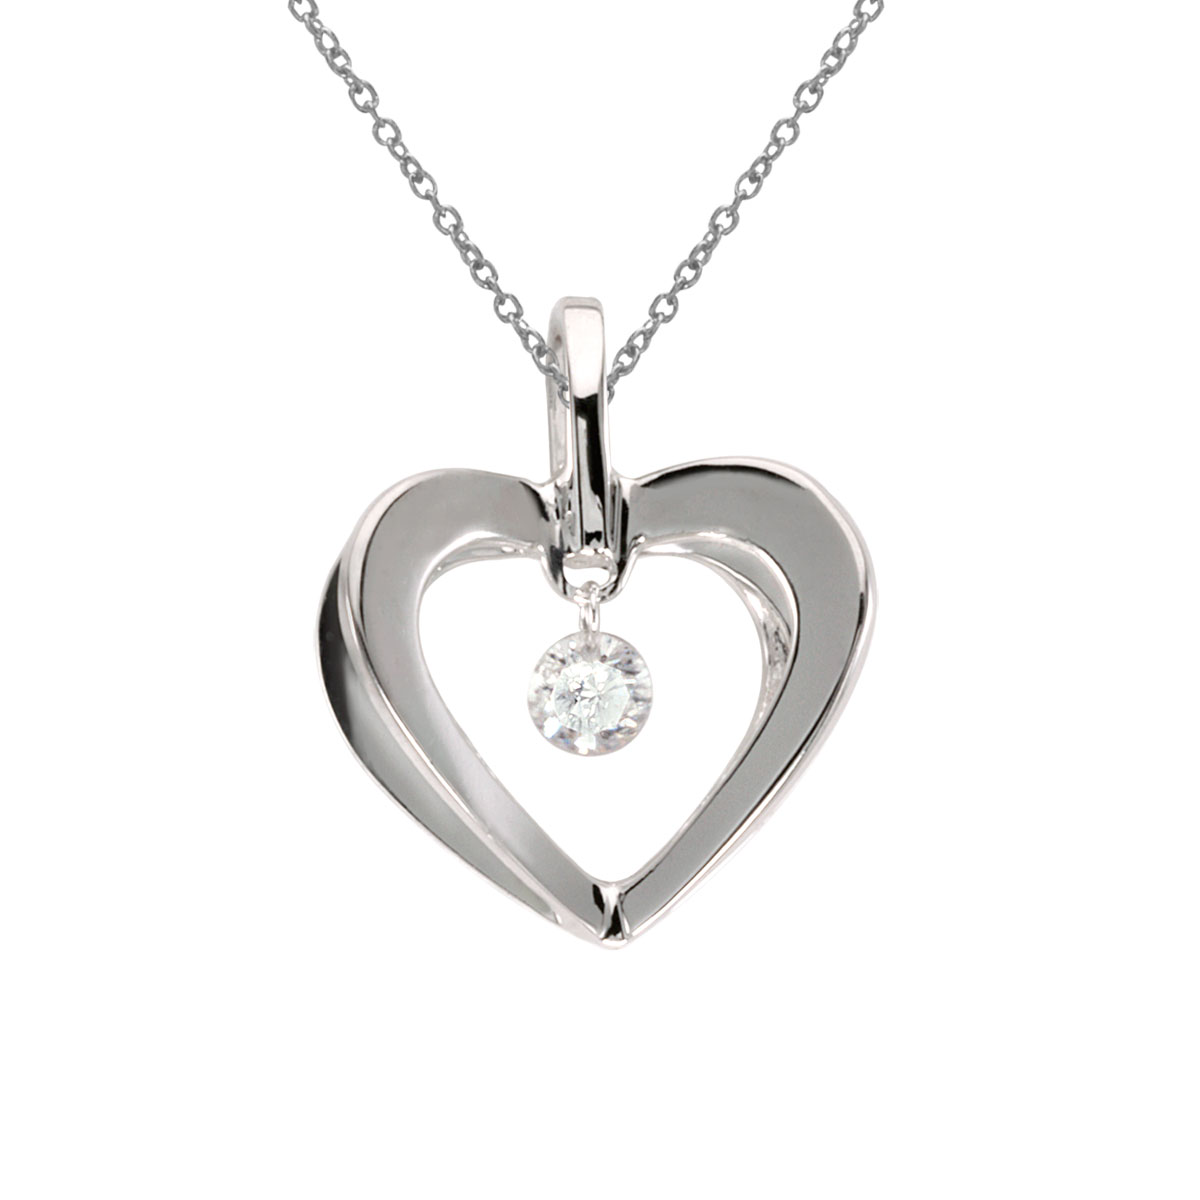 A stunning heart shaped pendant set in 10k white gold complemented with a shimmering .10 ct diamo...